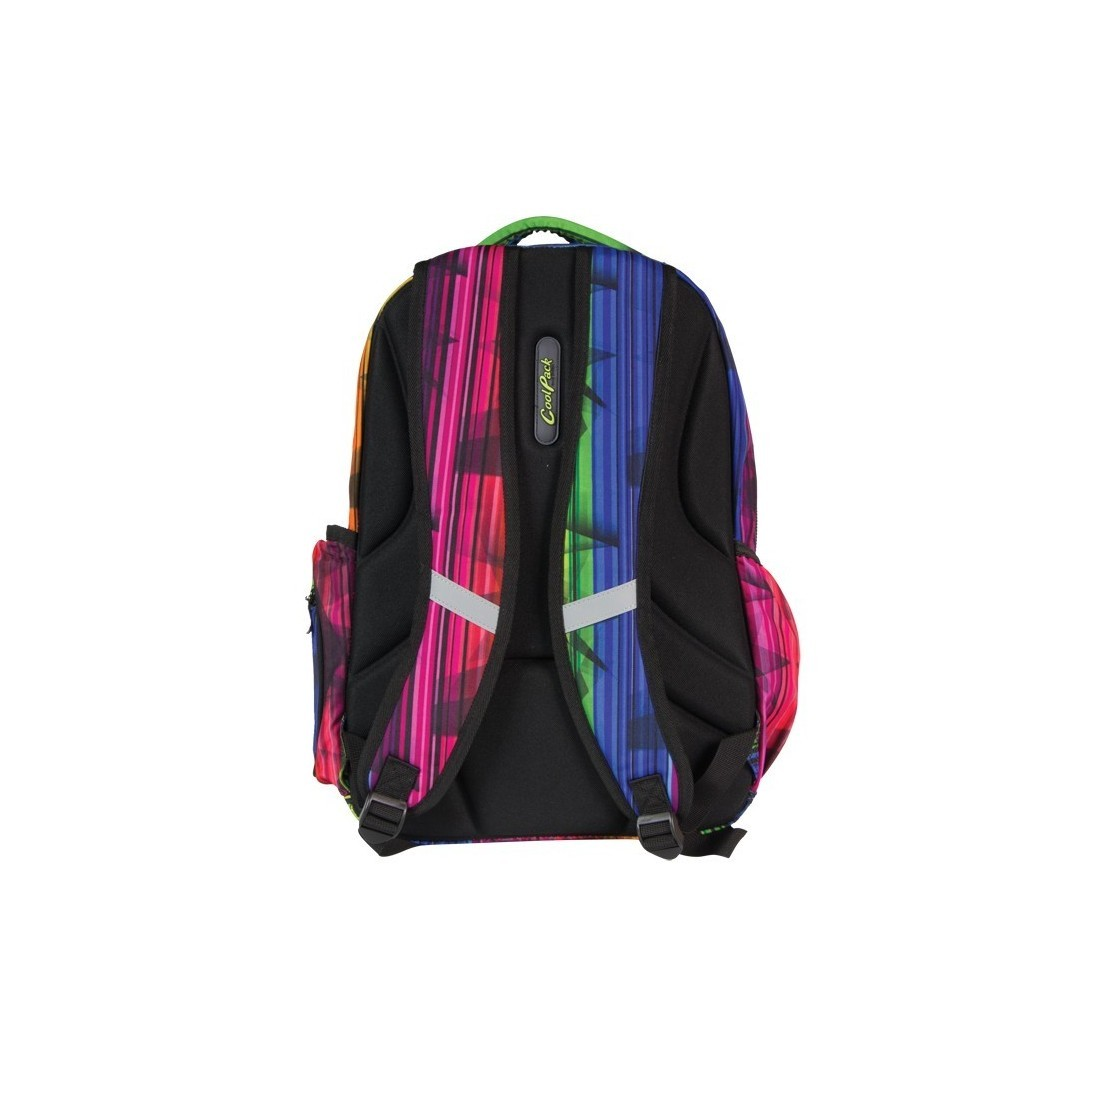 PLECAK MŁODZIEŻOWY COOLPACK LEADER CALIPSO CP 310 - plecak-tornister.pl